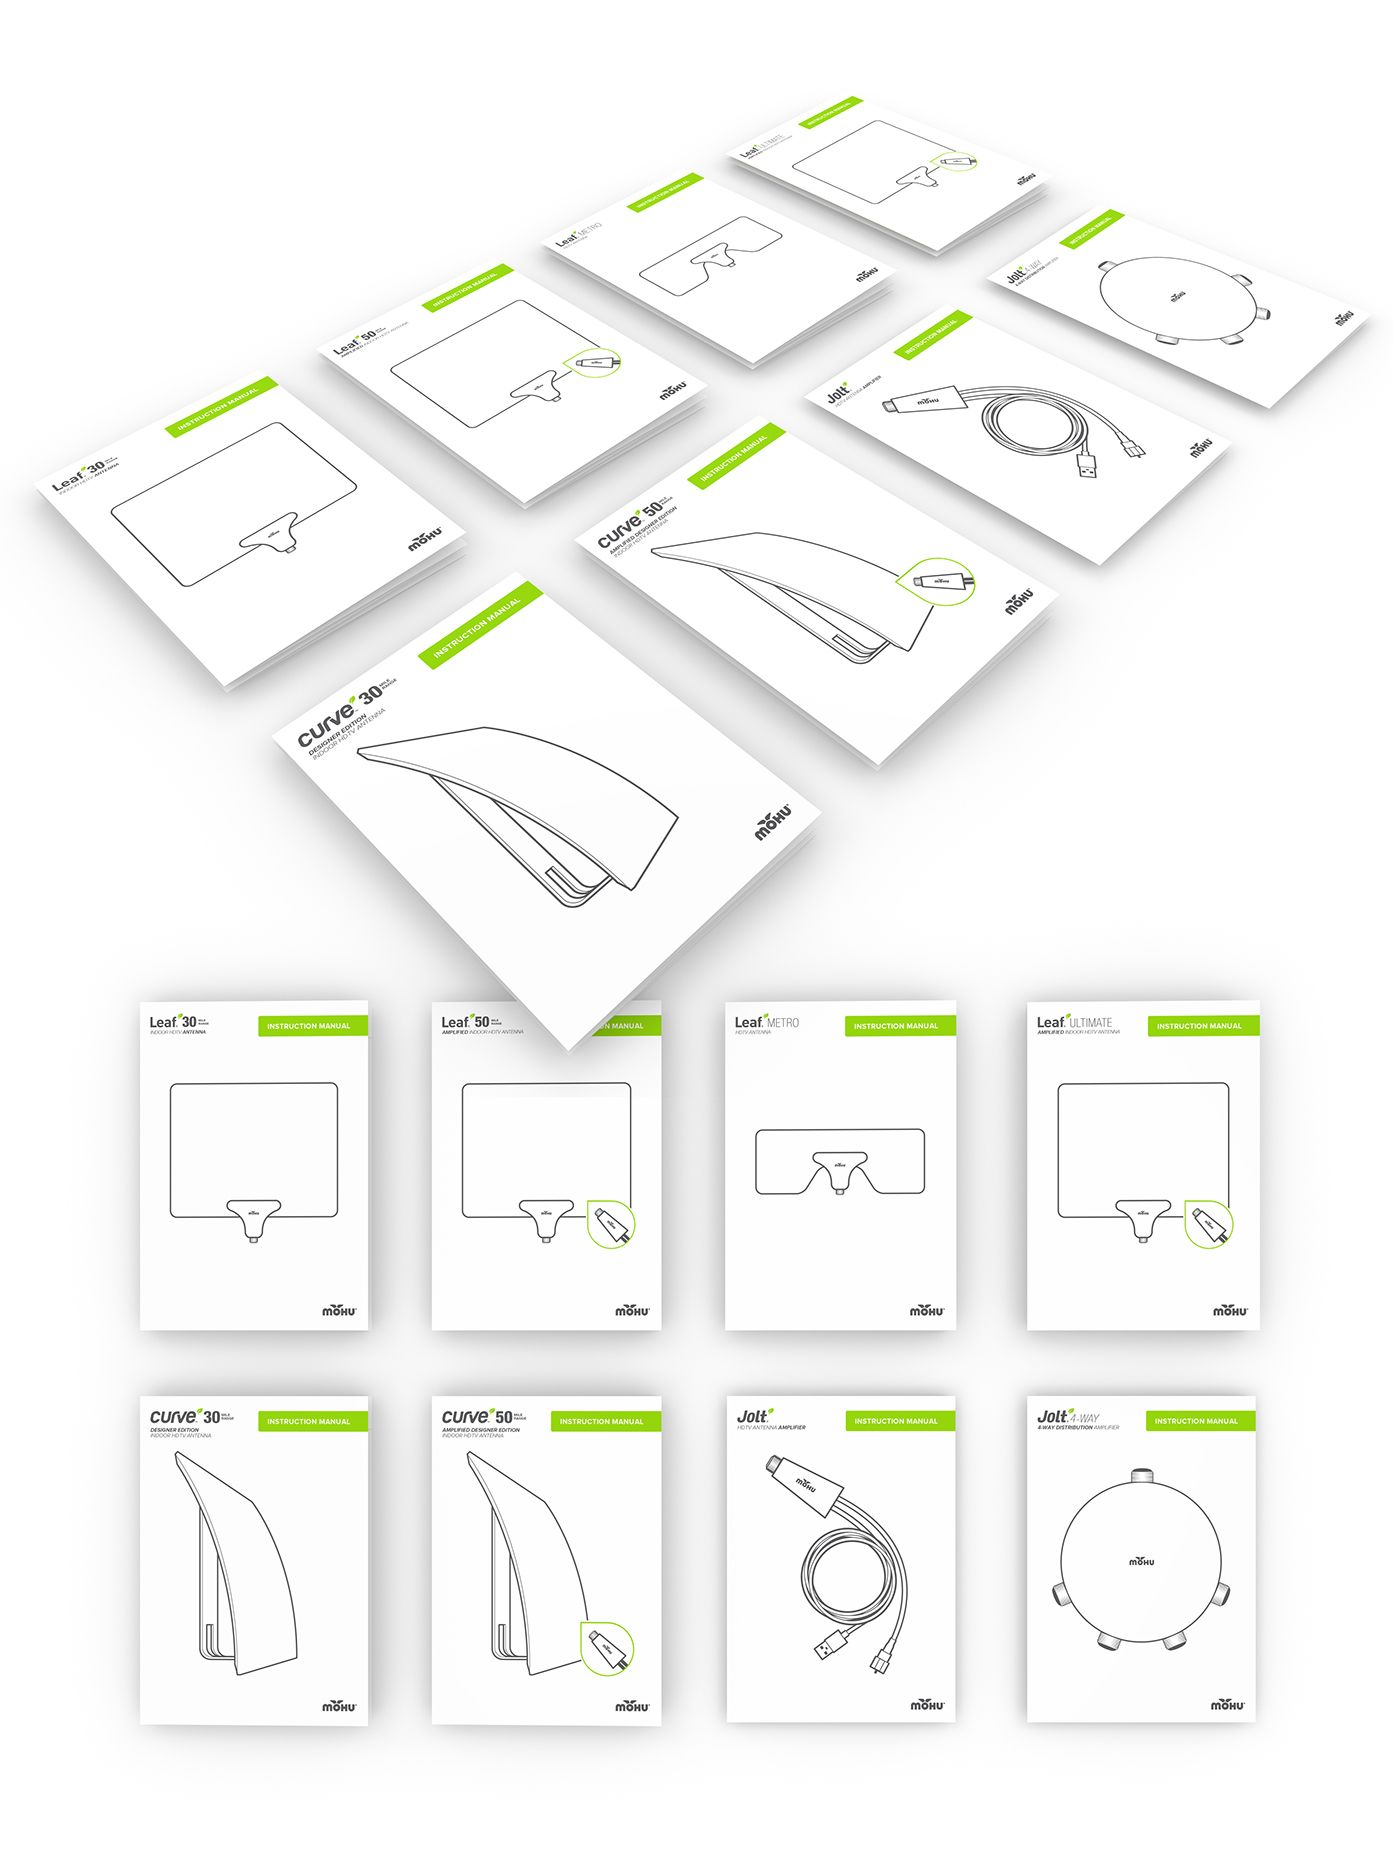 Instruction manuals created for Mohu product line